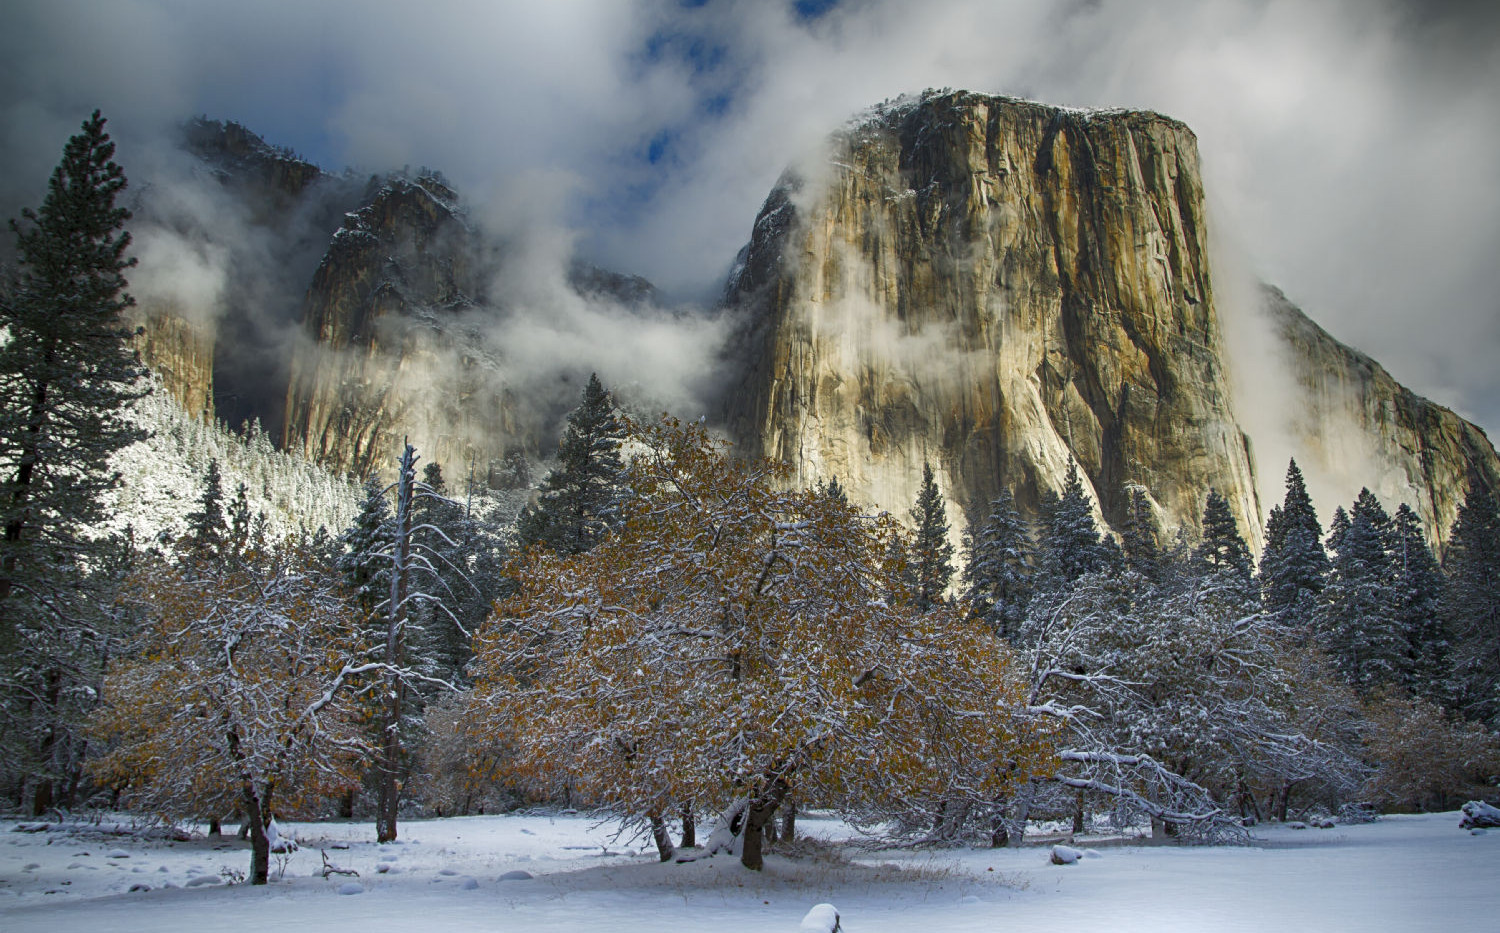 Early Storm in Yosemite